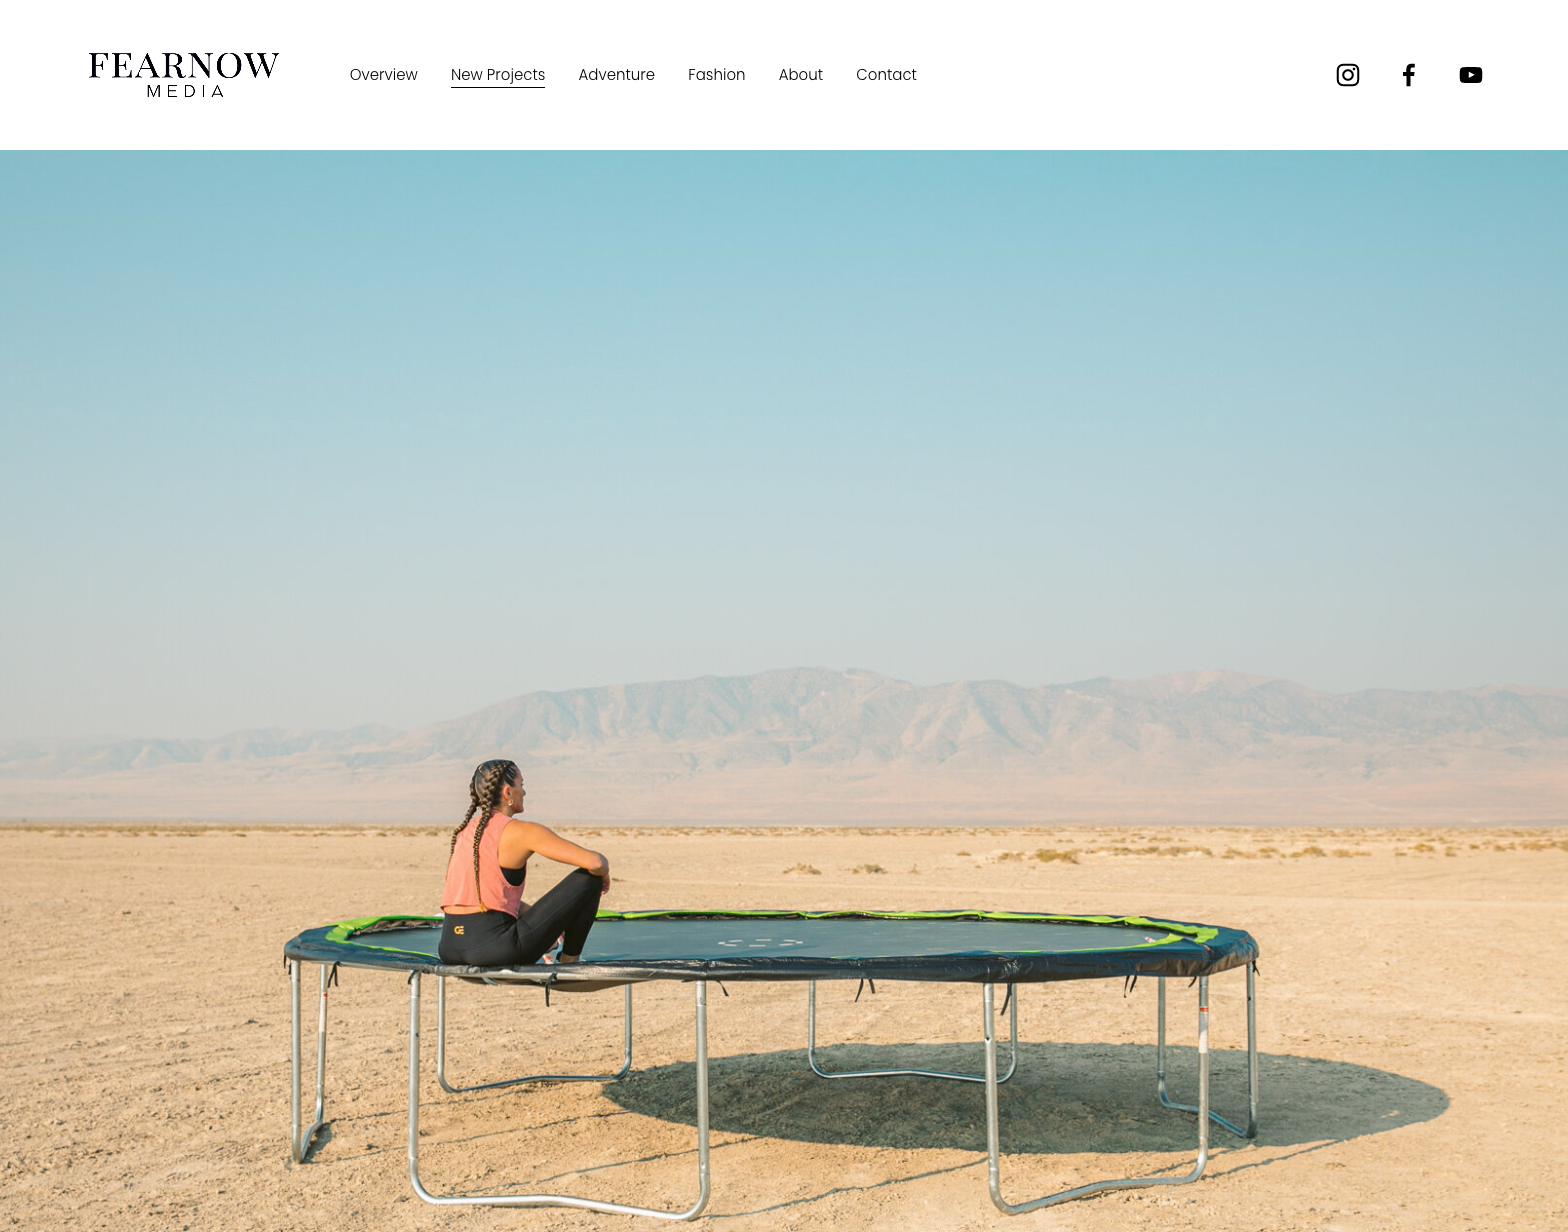 Keith Fearnow's new website presentation, including one of his recent personal projects